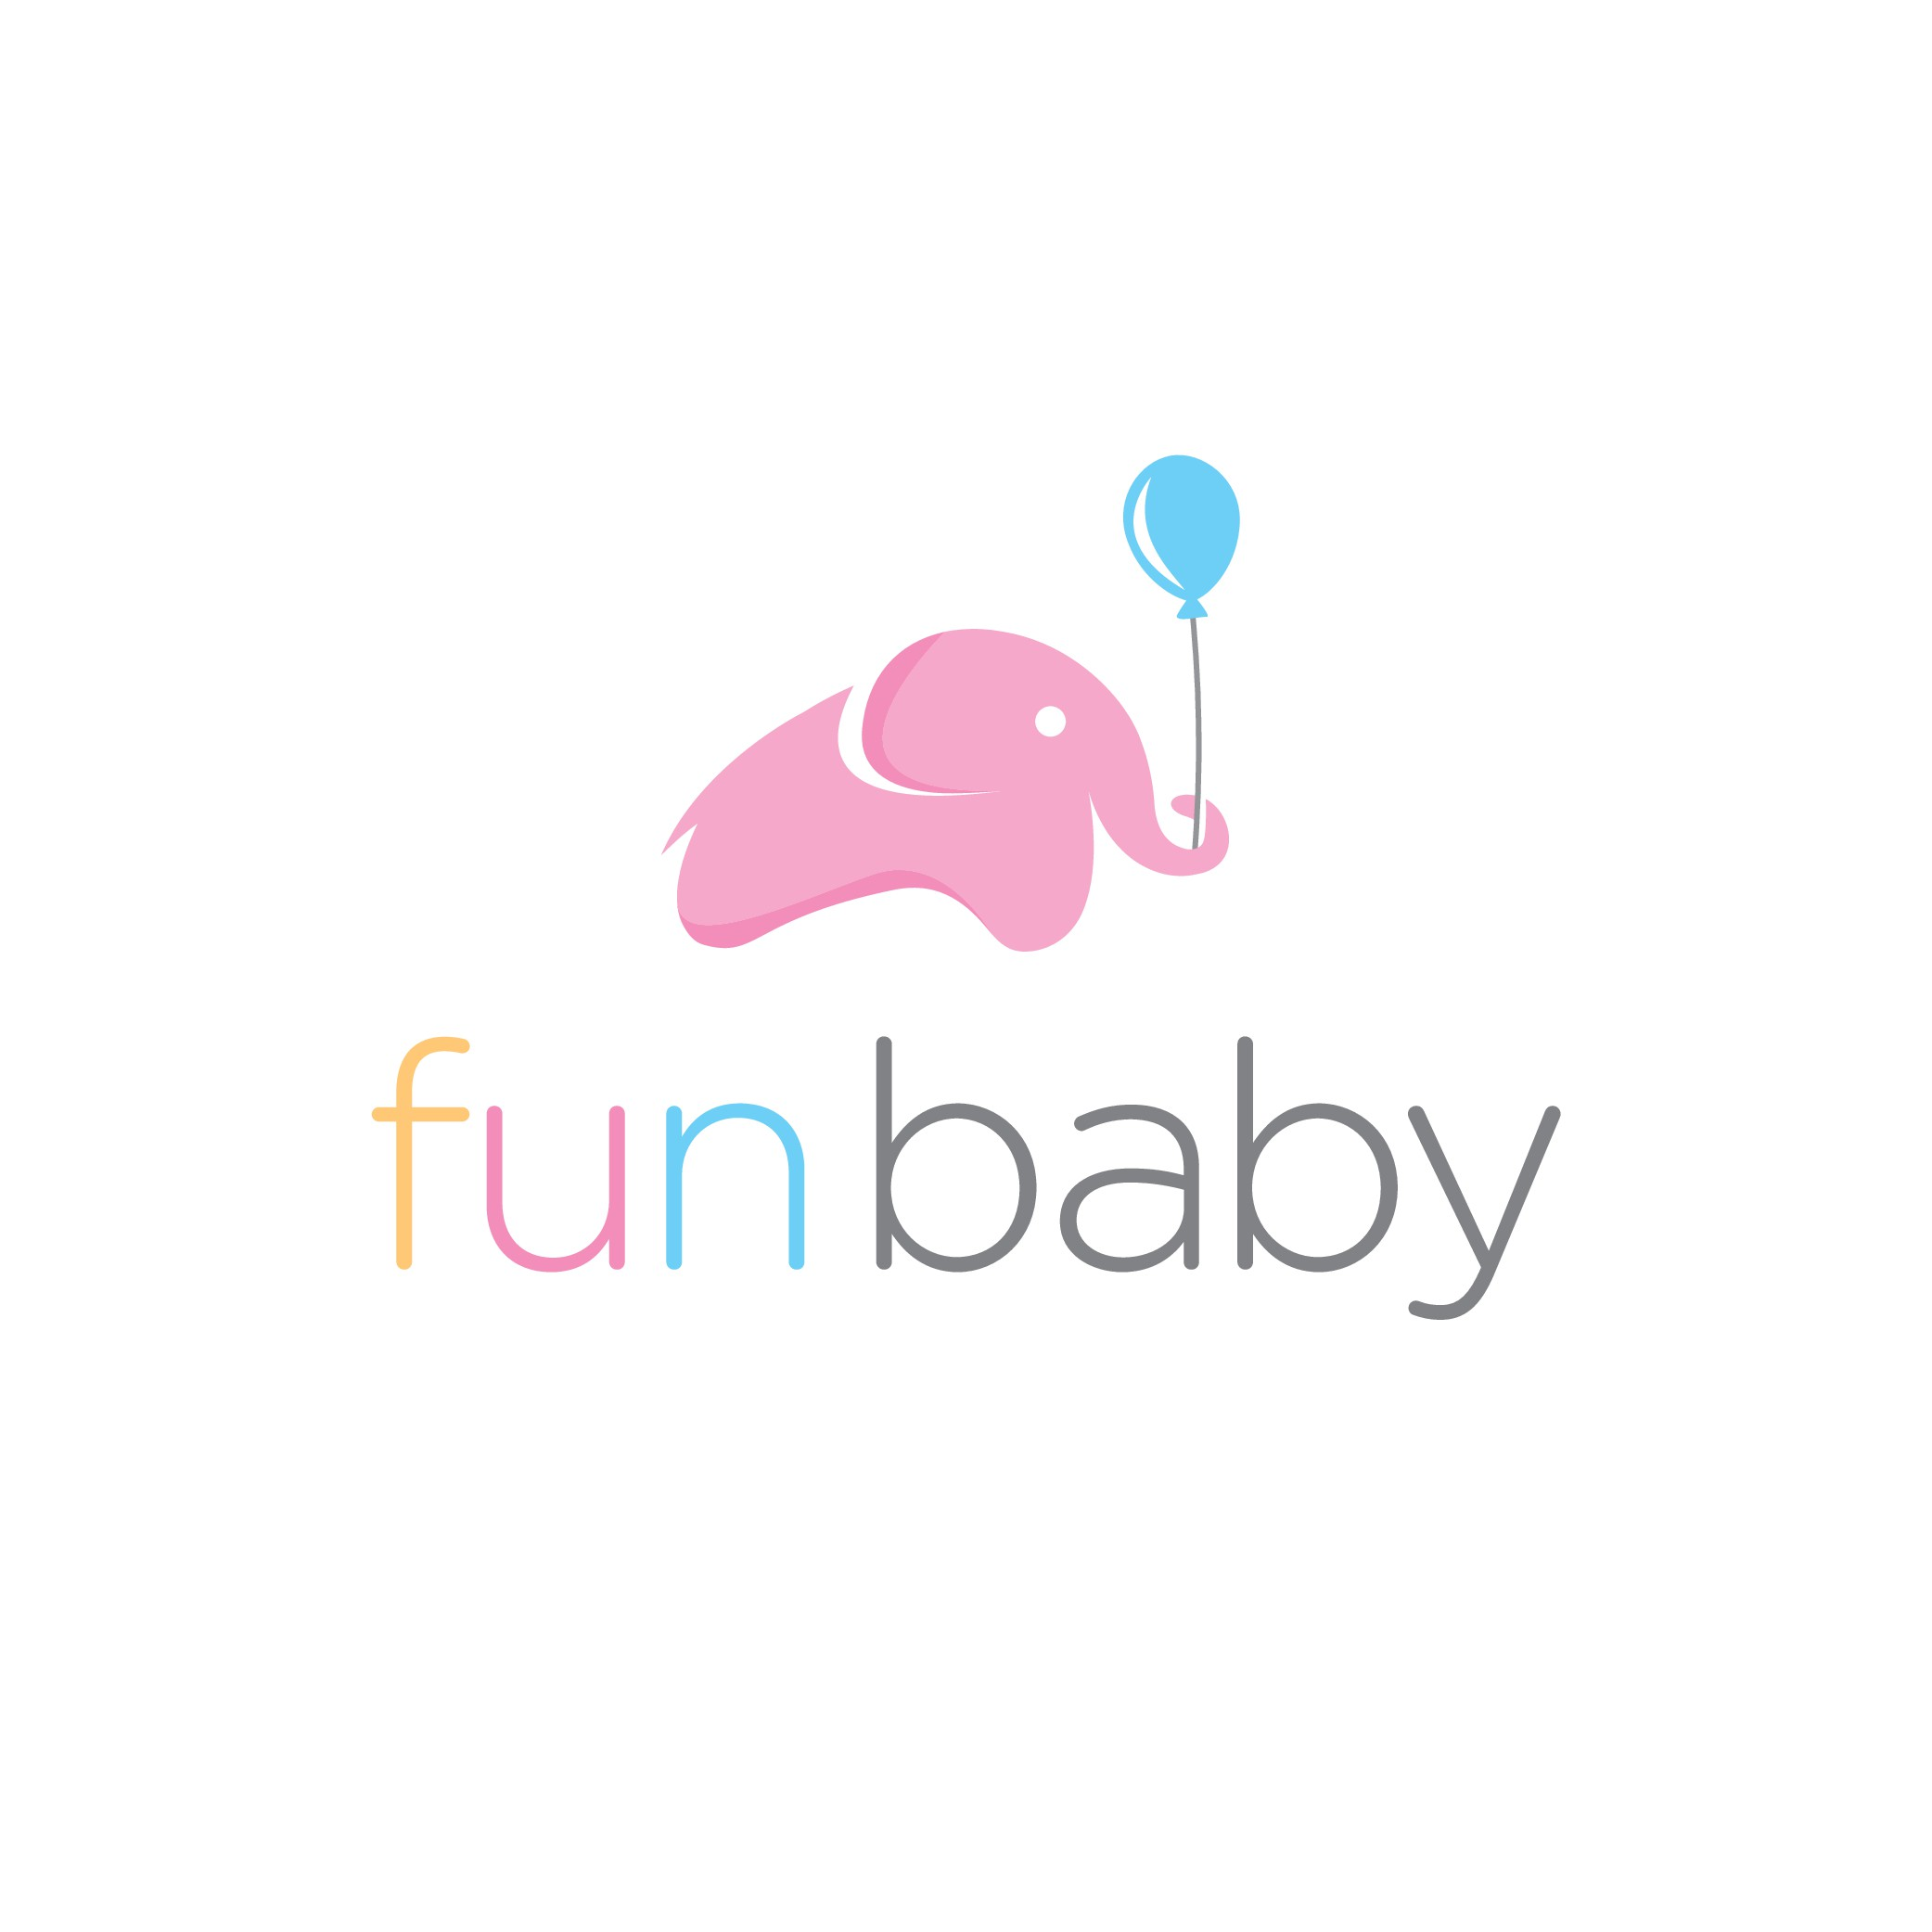 Global Baby Fashion Brand looking for new Logo!